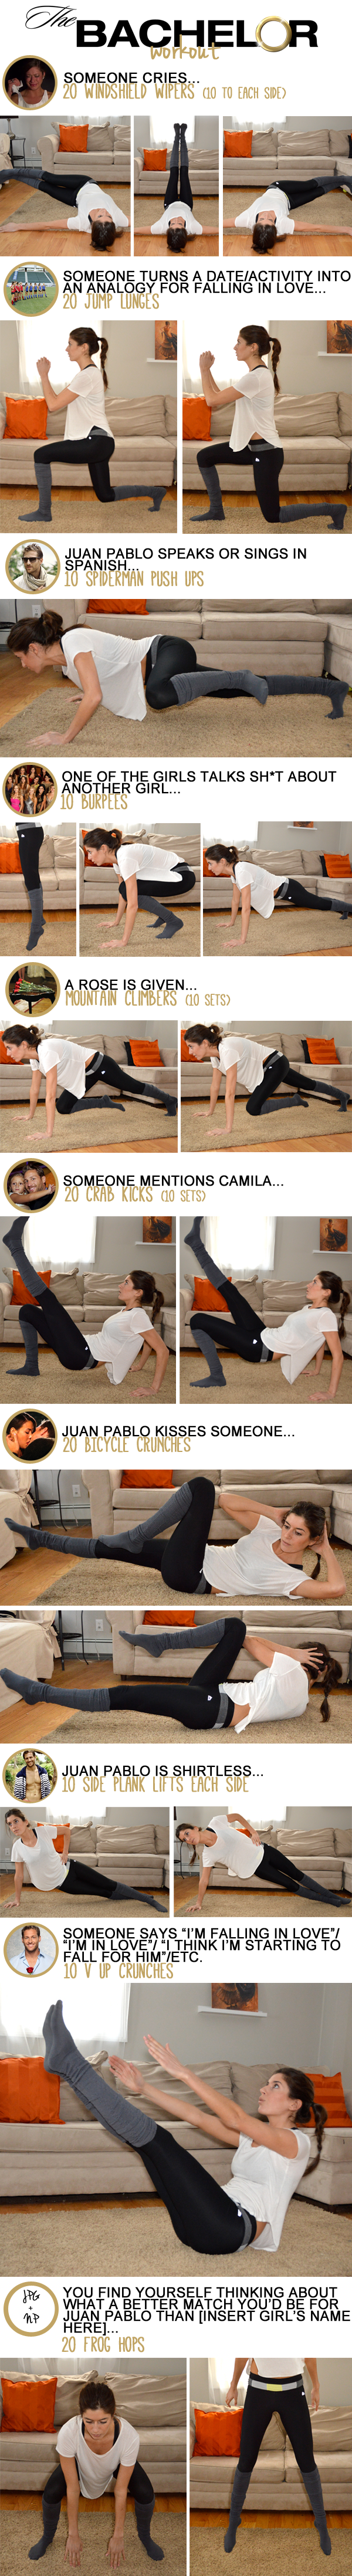 The Bachelor Workout (like a drinking game--only heathy!)